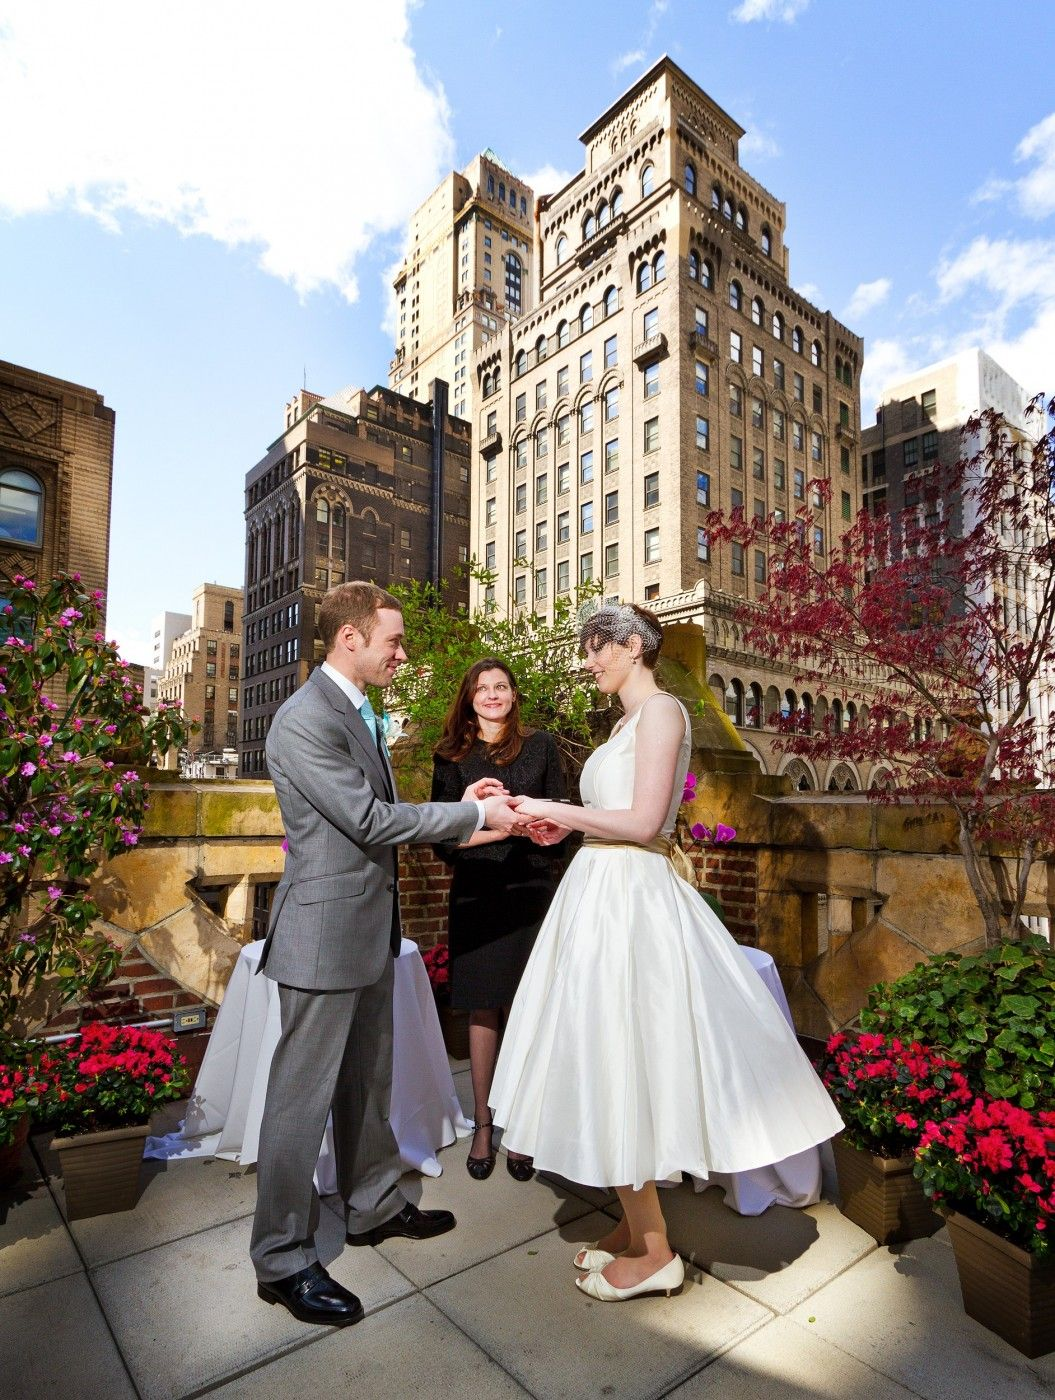 Weddings And Honeymoons At The Library Hotel, New York